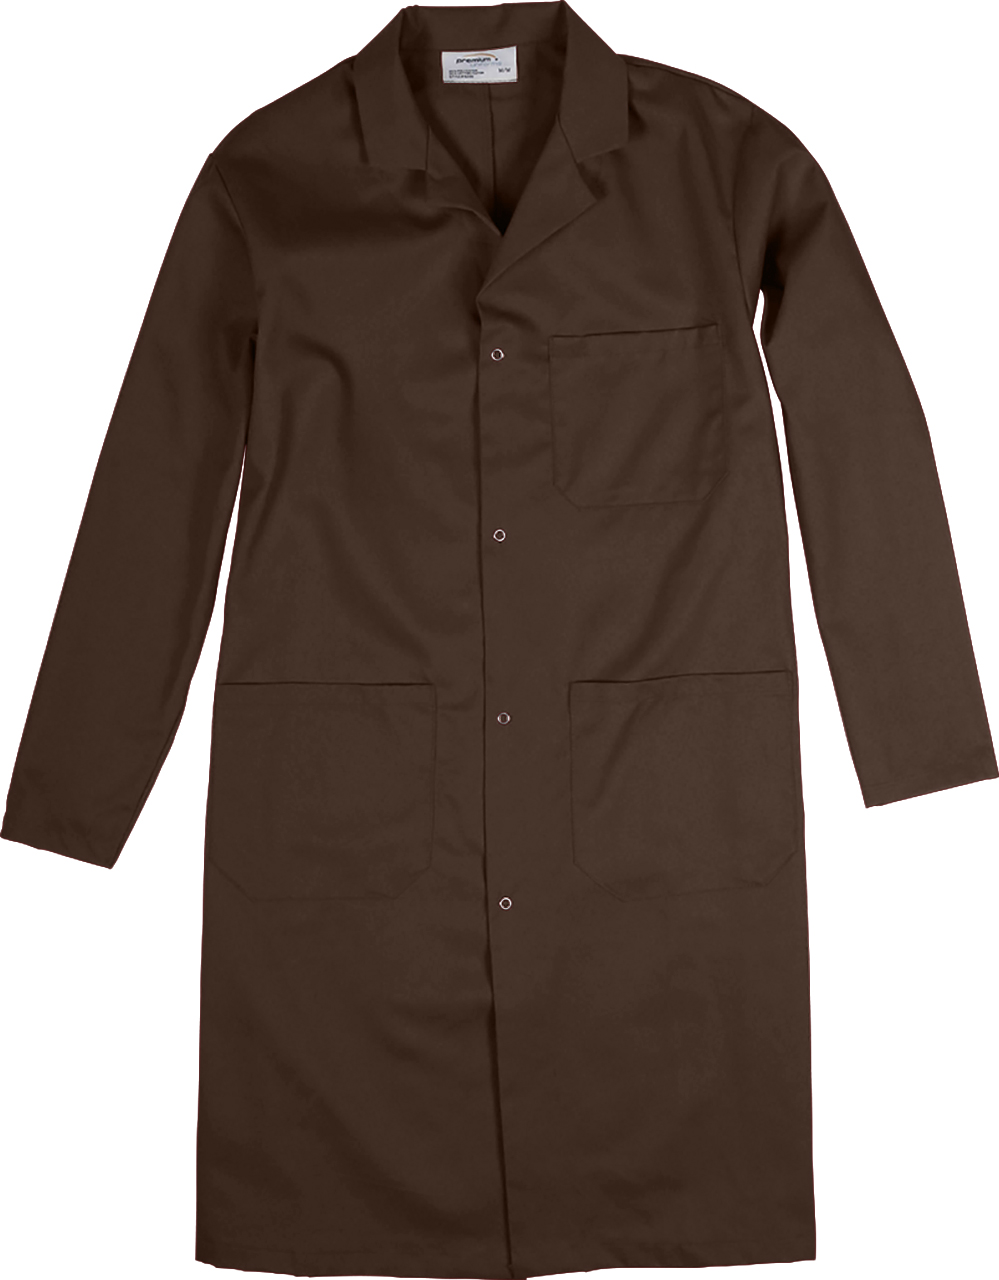 Picture of Premium Uniforms Three-Pocket Long Coat With Snap Closure